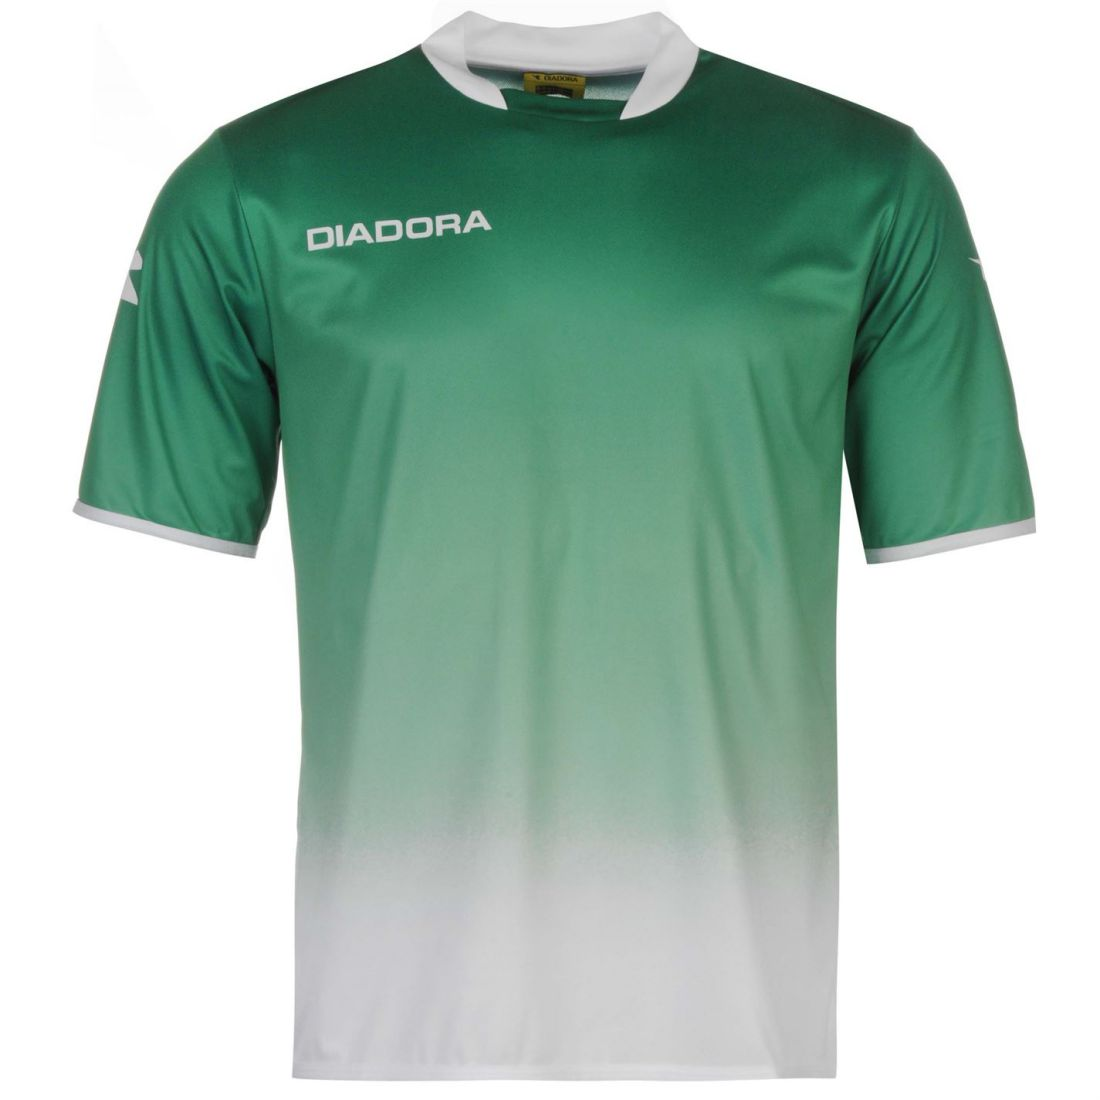 ddcd8bff6d7932 Details about Diadora Mens Moron Training T Shirt Baselayer Top Tee  Compression Armor Thermal